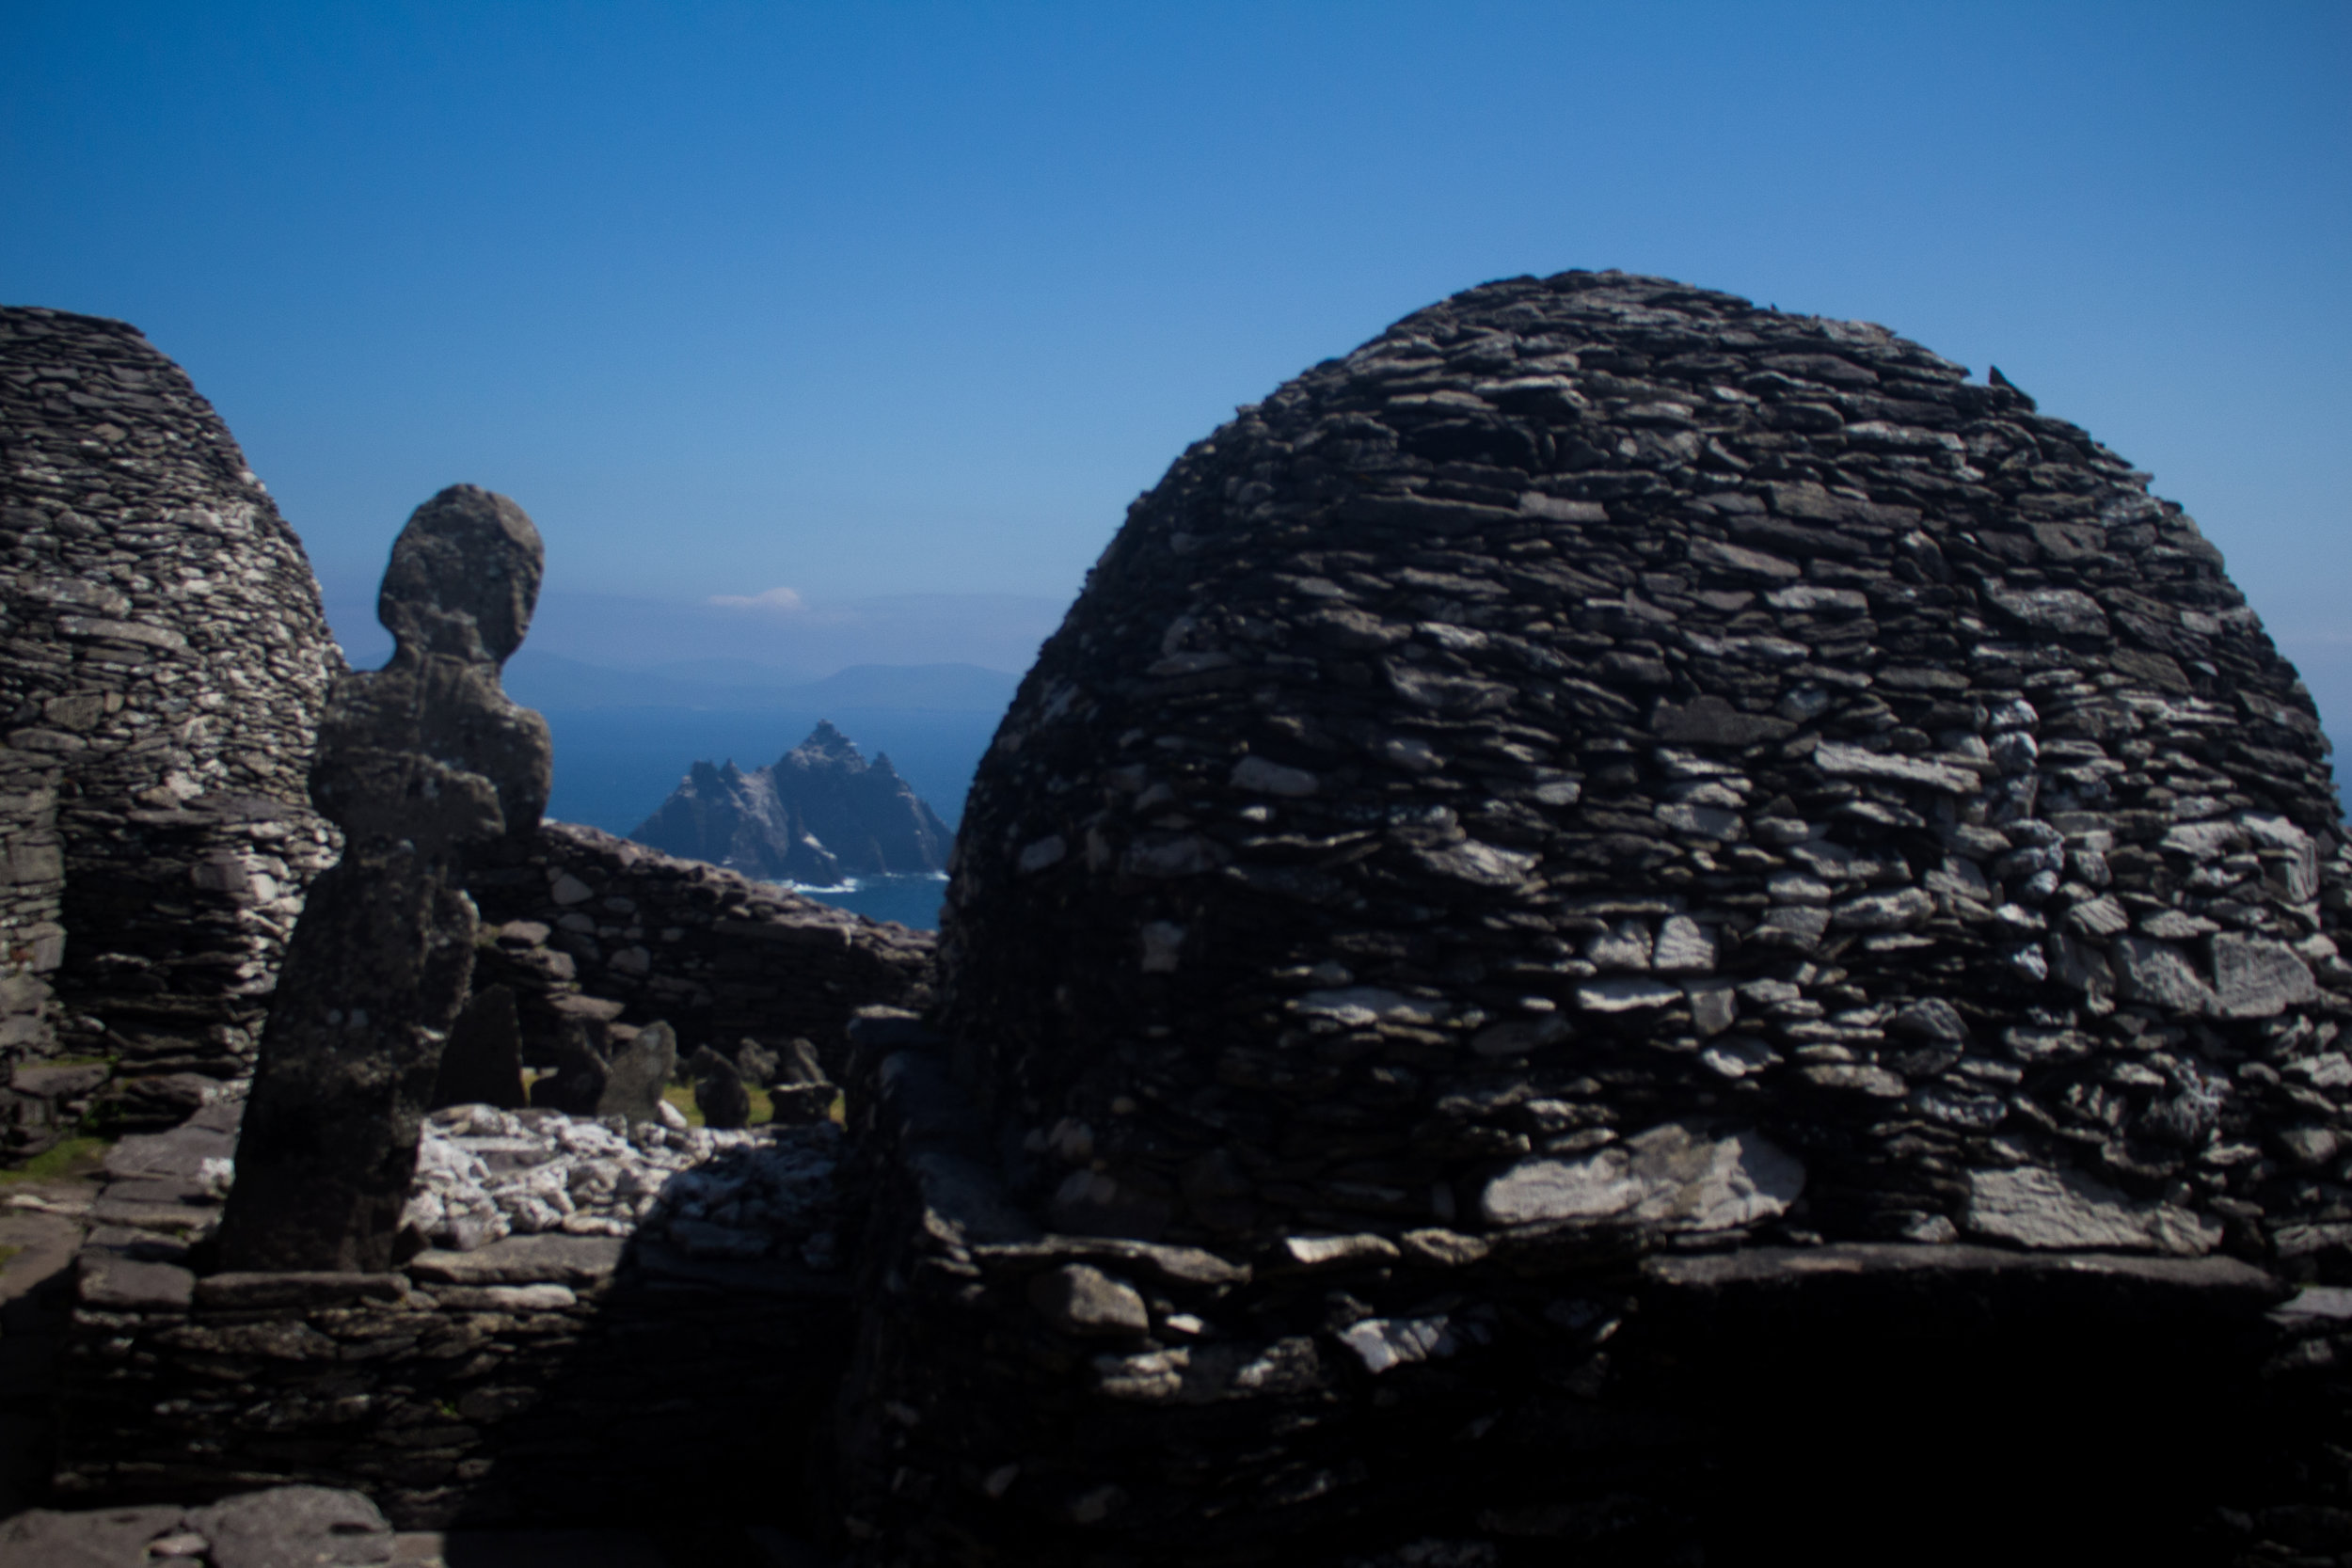 Beehive shaped monastic structures, atop Skellig Michael.